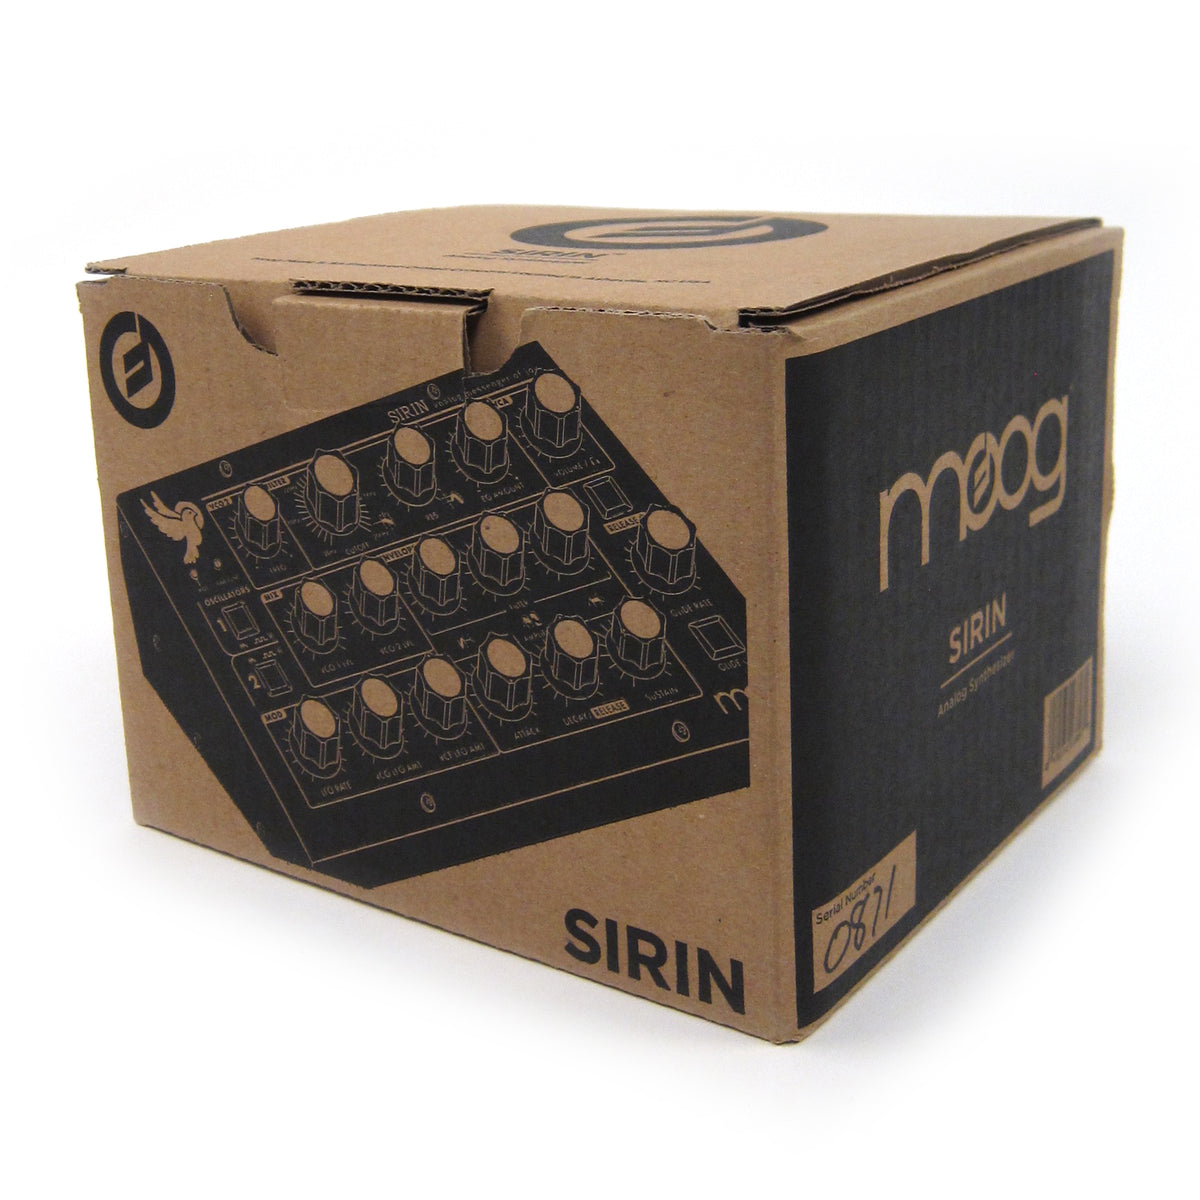 Moog: Sirin Synthesizer Module - Limited Edition